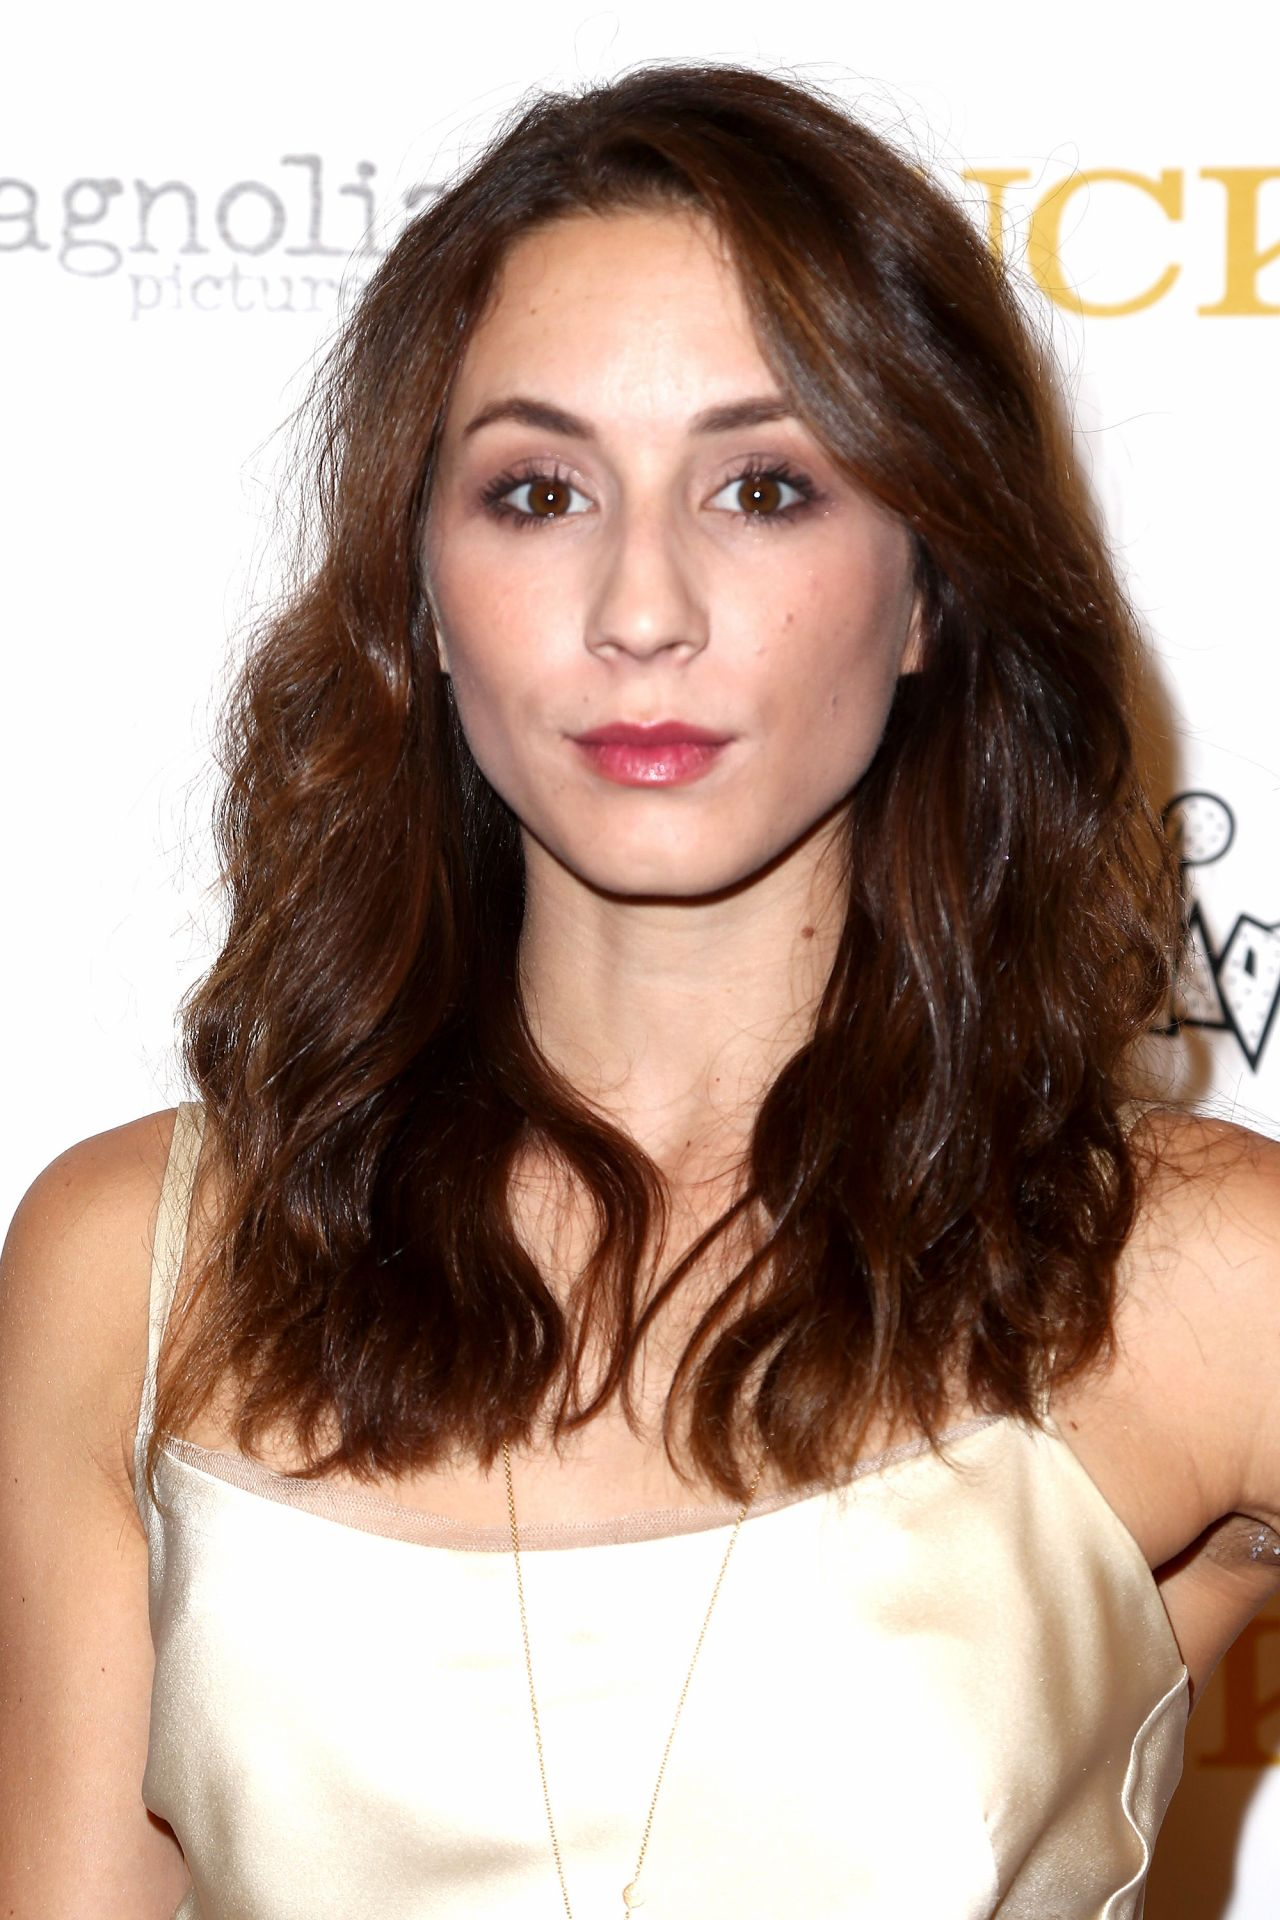 troian bellisario quotluckyquot premiere in los angeles 09262017